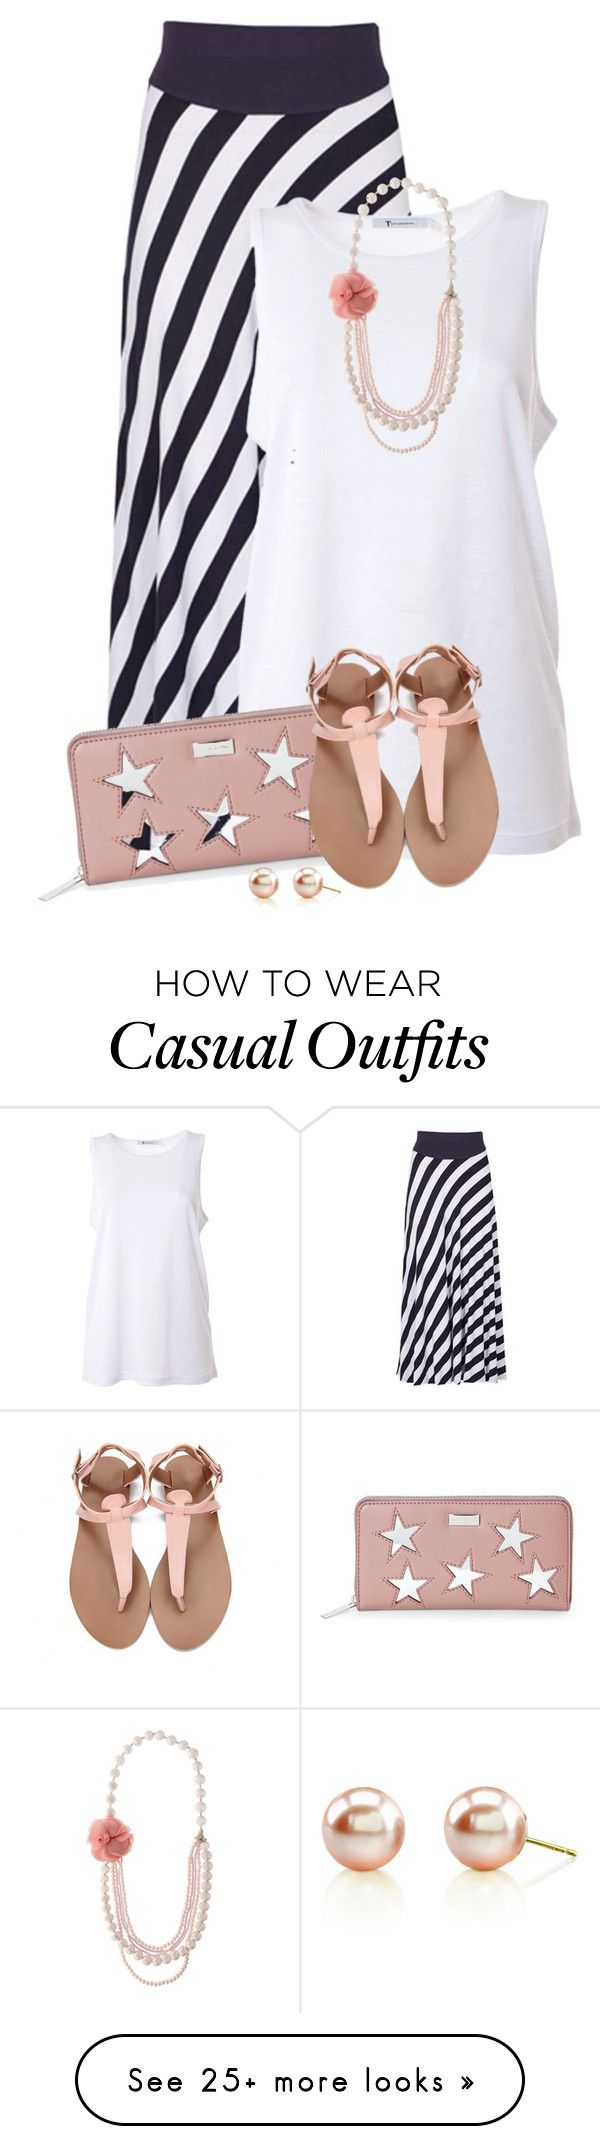 """""""Easy Summer Style"""" by kginger on Polyvore featuring Izabel London, T By Alexander Wang, STELLA McCARTNEY and Adele Marie"""